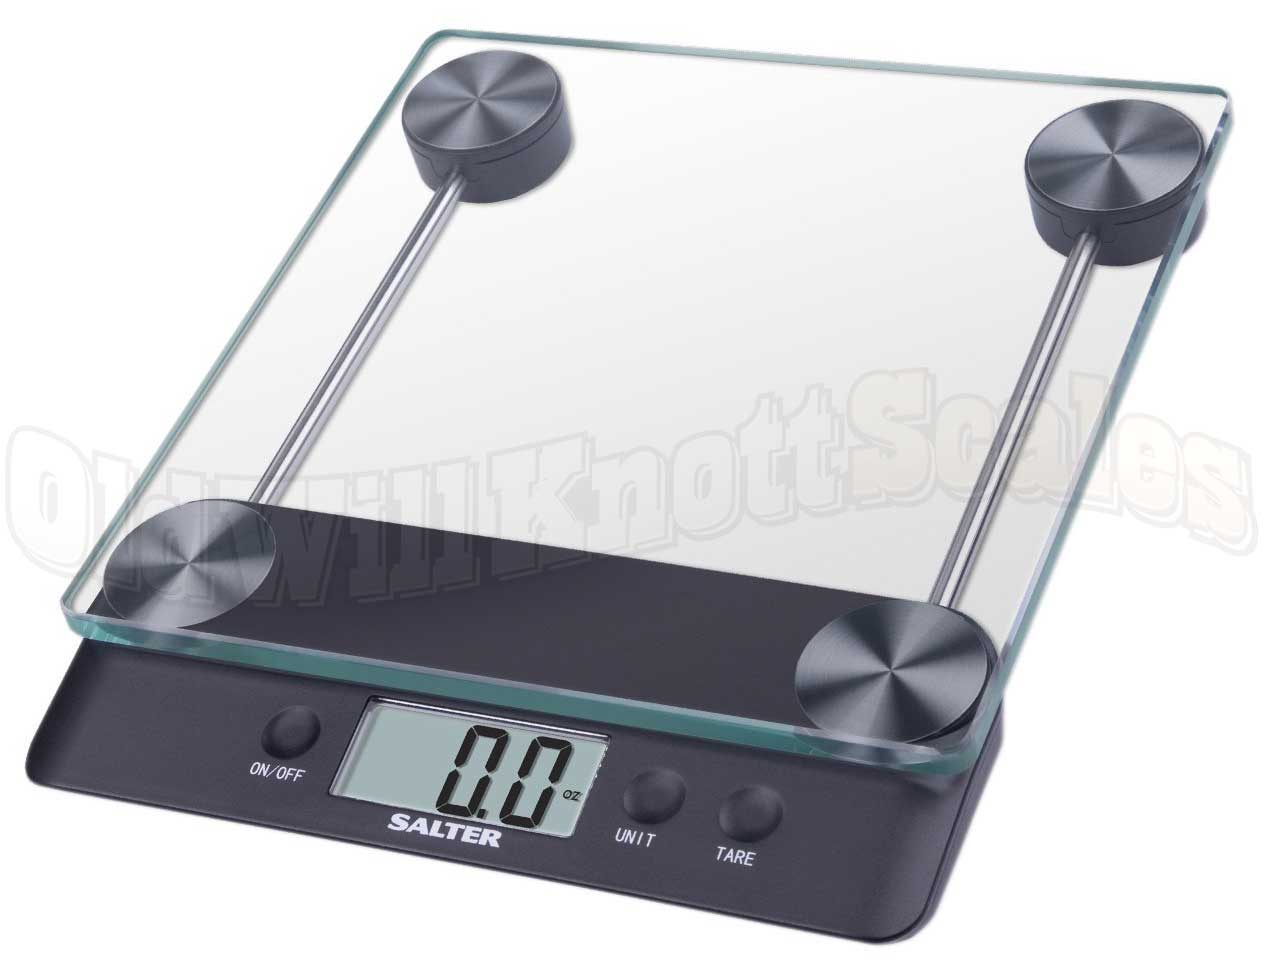 The Salter 3830 High Capacity Digital Kitchen Scale With